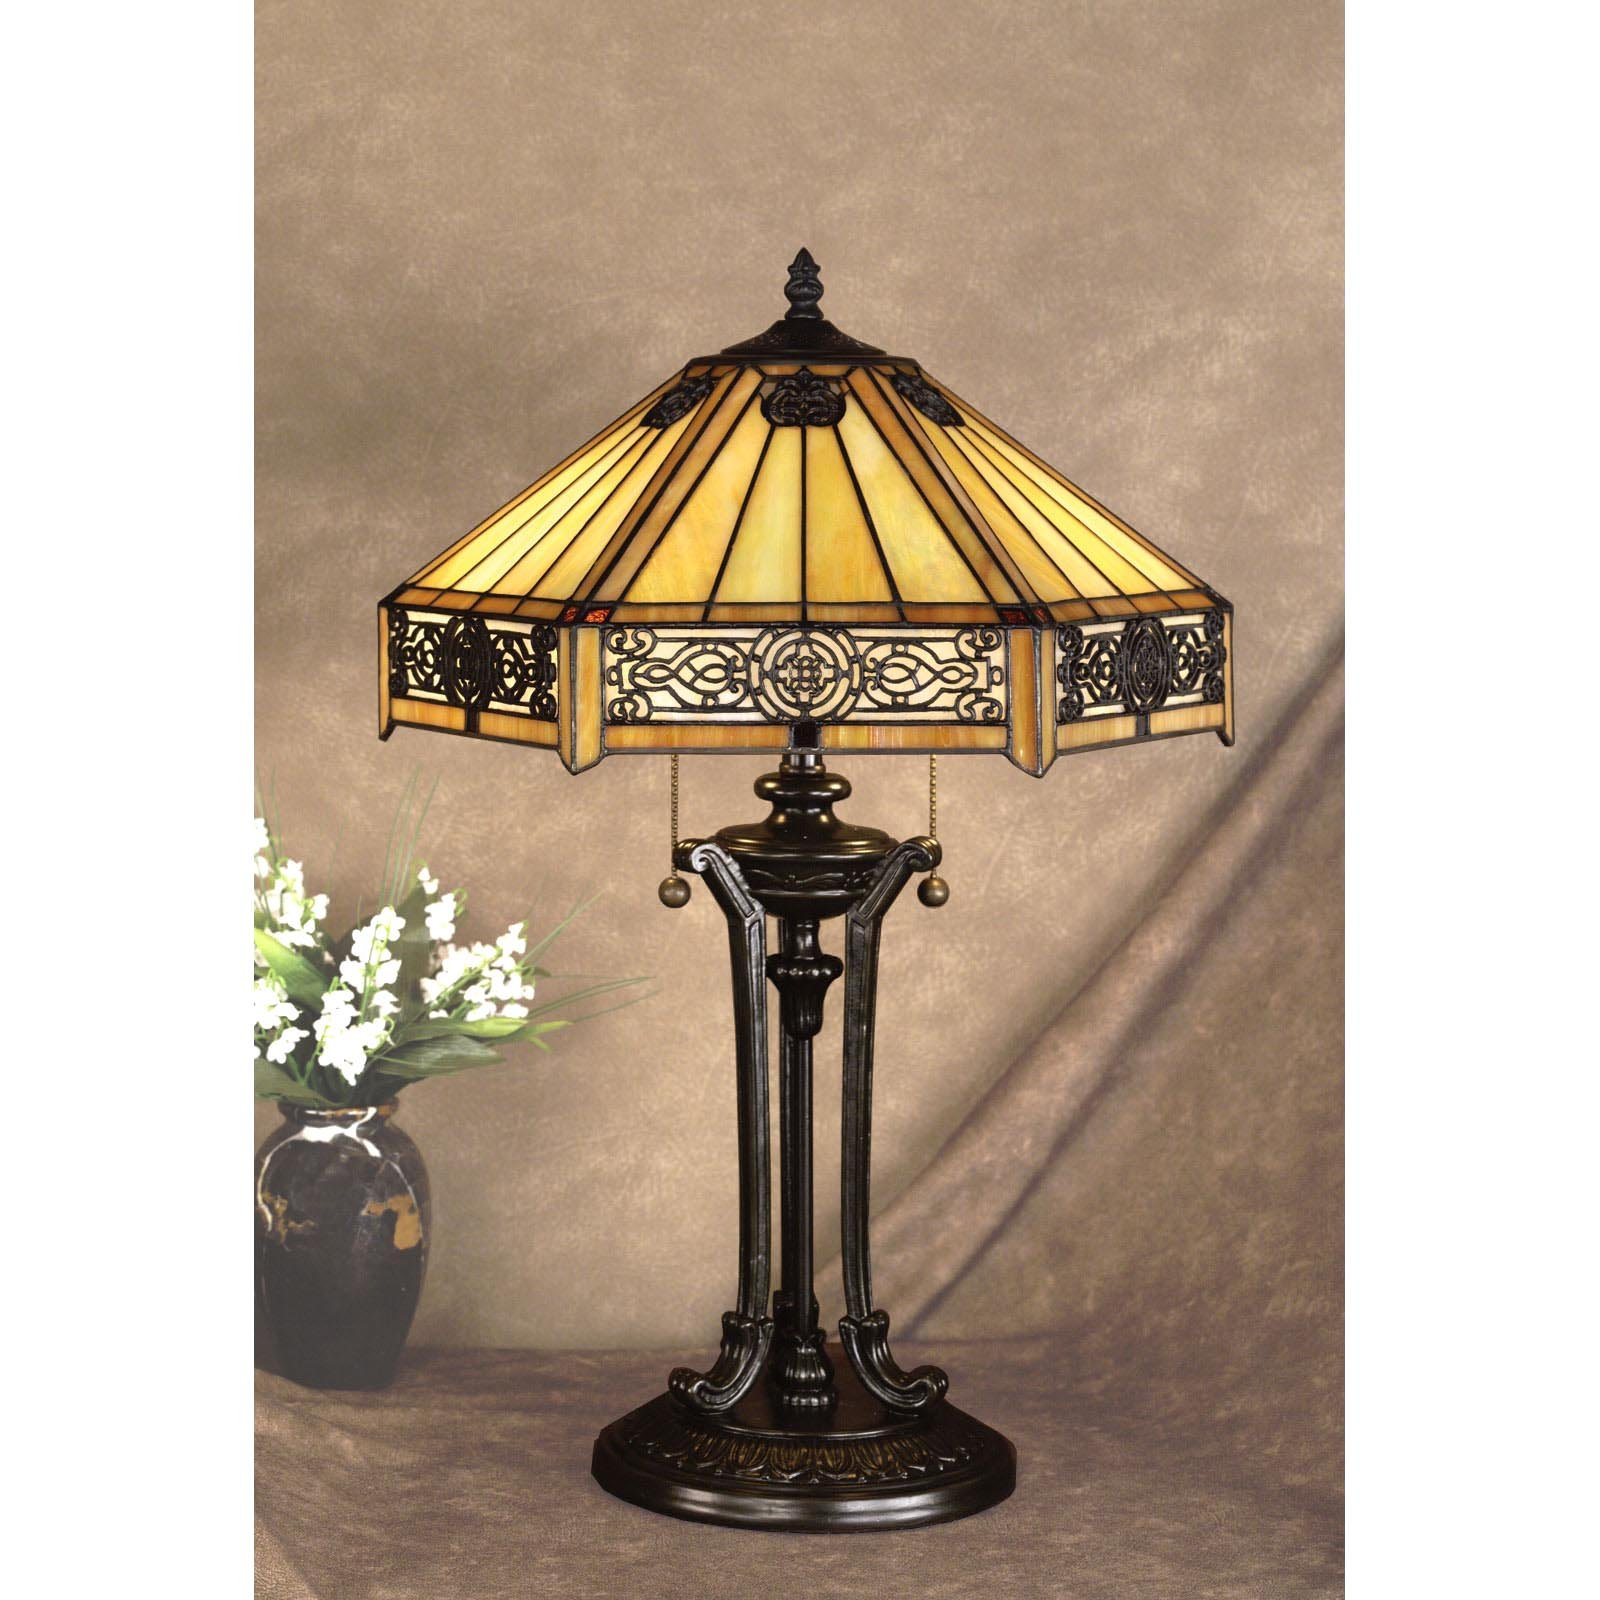 Tiffany lamp quoizel on deluxe interior lighting design - Chandelier desk lamp ...